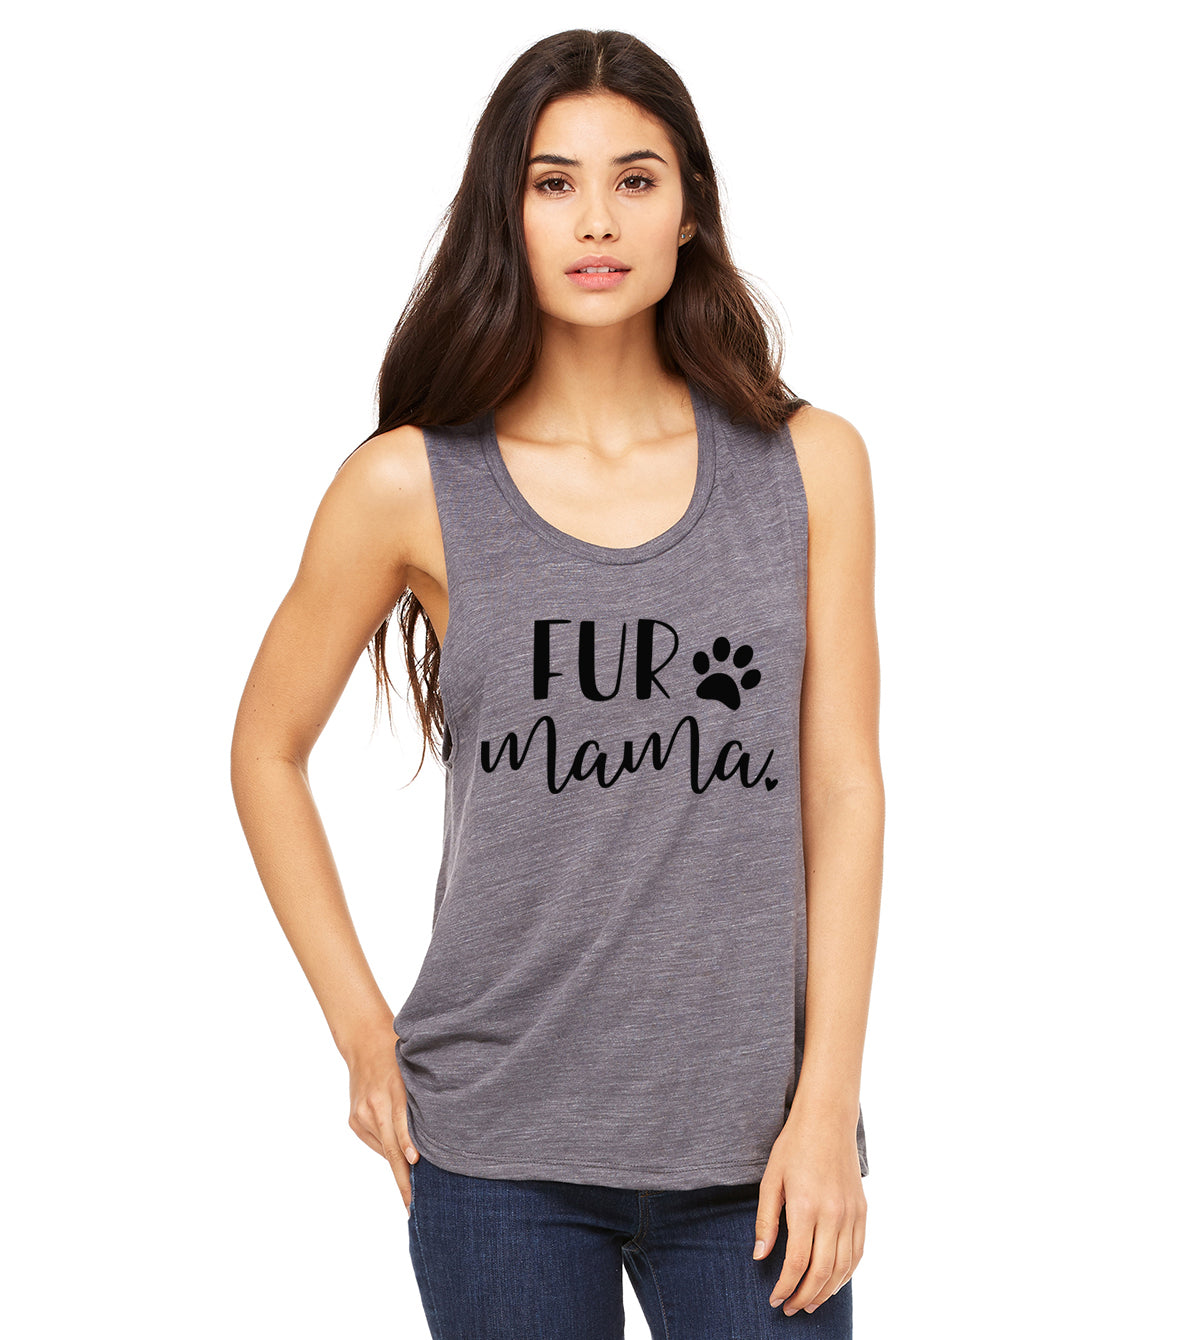 Fur Mama Muscle Tank. DOG Mom. Dog Mama Shirt. Gift for Animal Lover. Rescue Adopt Shirt. Dog Shirt. Dog Obsessed. Cat Mom. Fur Momma